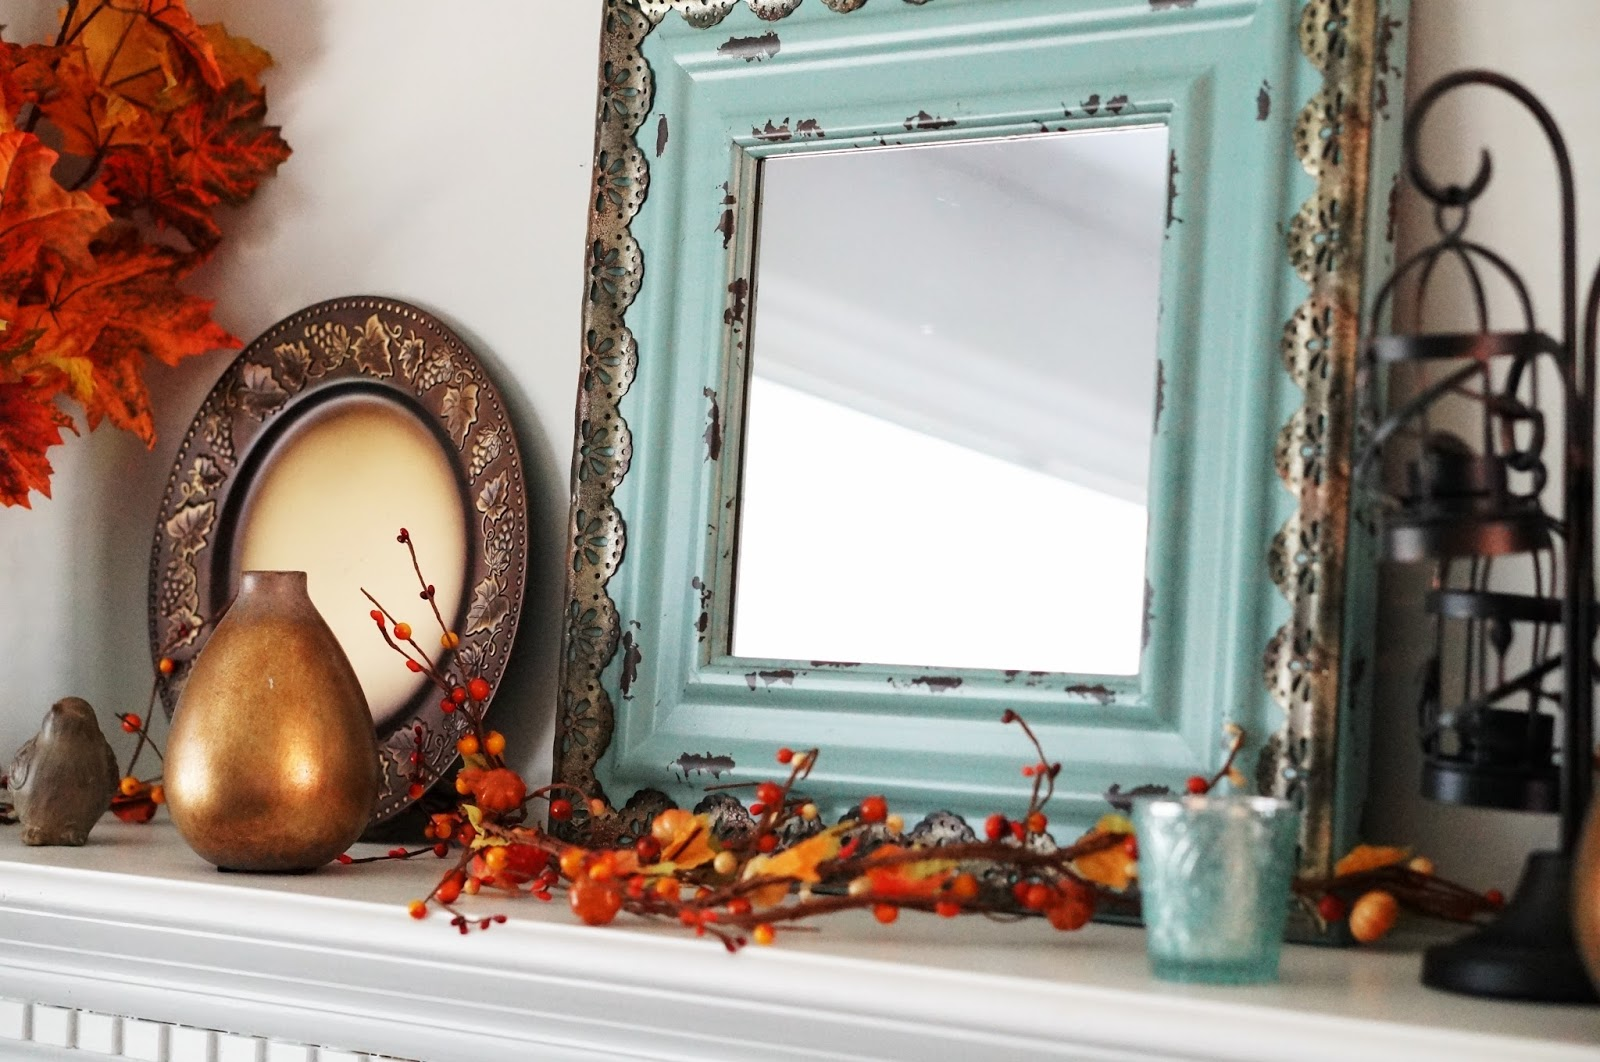 Rebecca Lately Fall Decor 2016 Fall Mantel in Orange Turquoise Bronze Mirror Garland Leaves Large Mantel